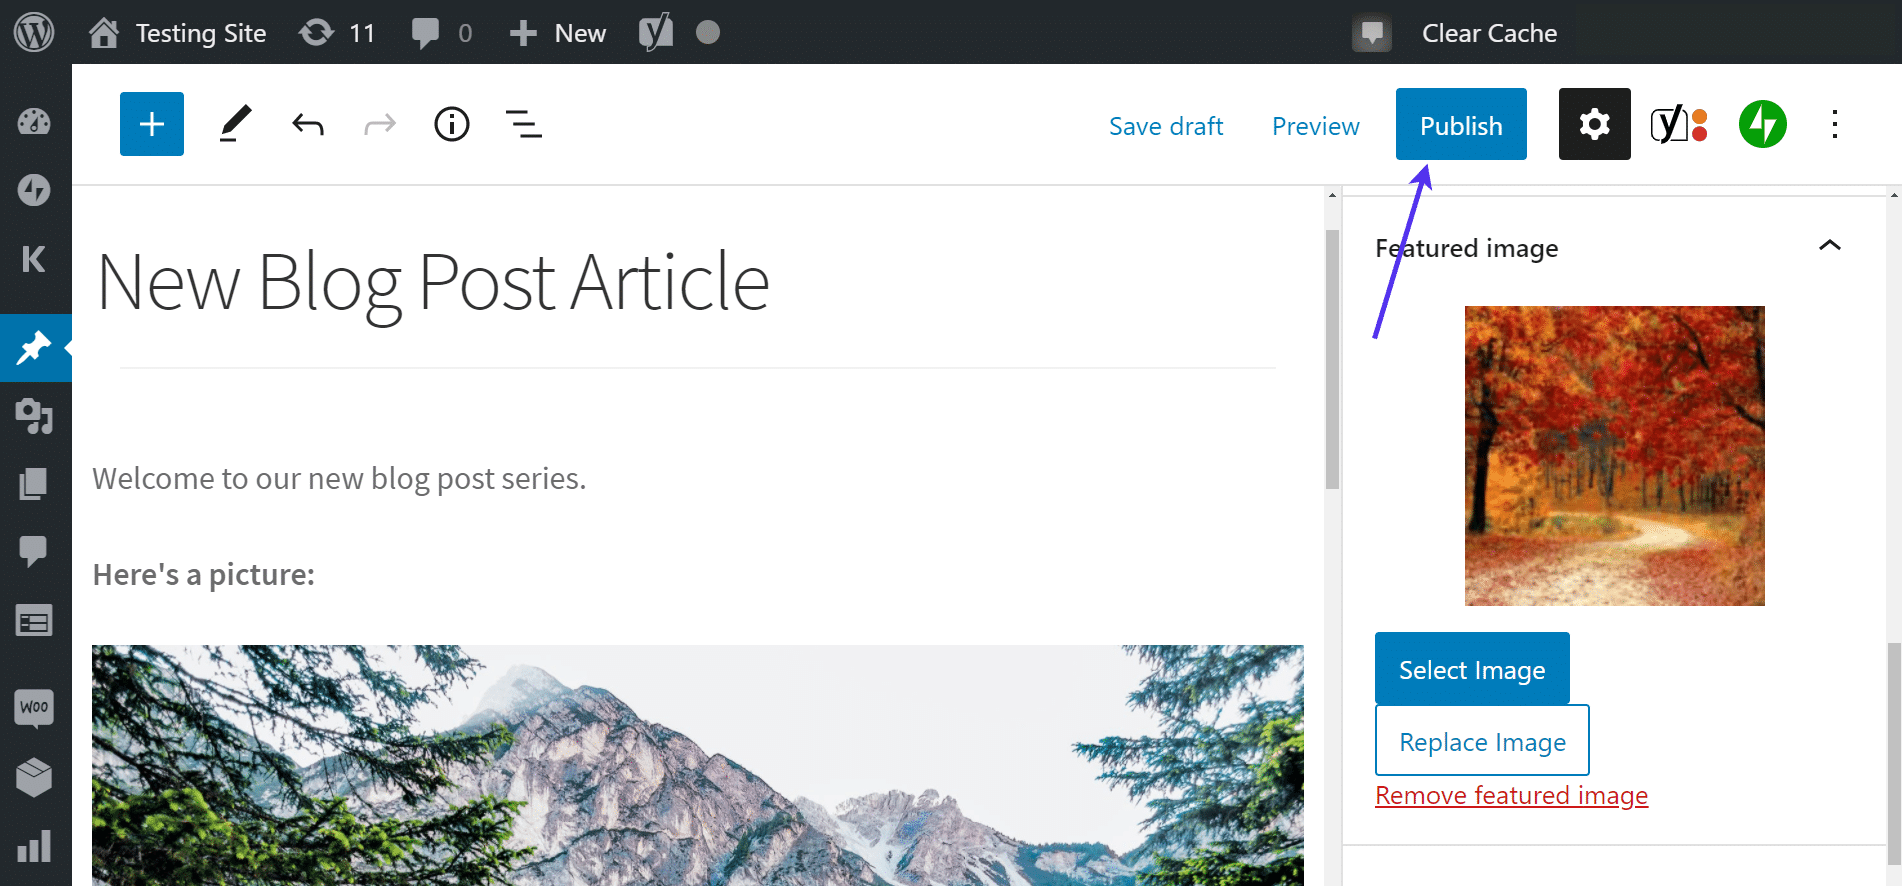 Hit the publish button to cure WordPress Featured Image Not Showing issue